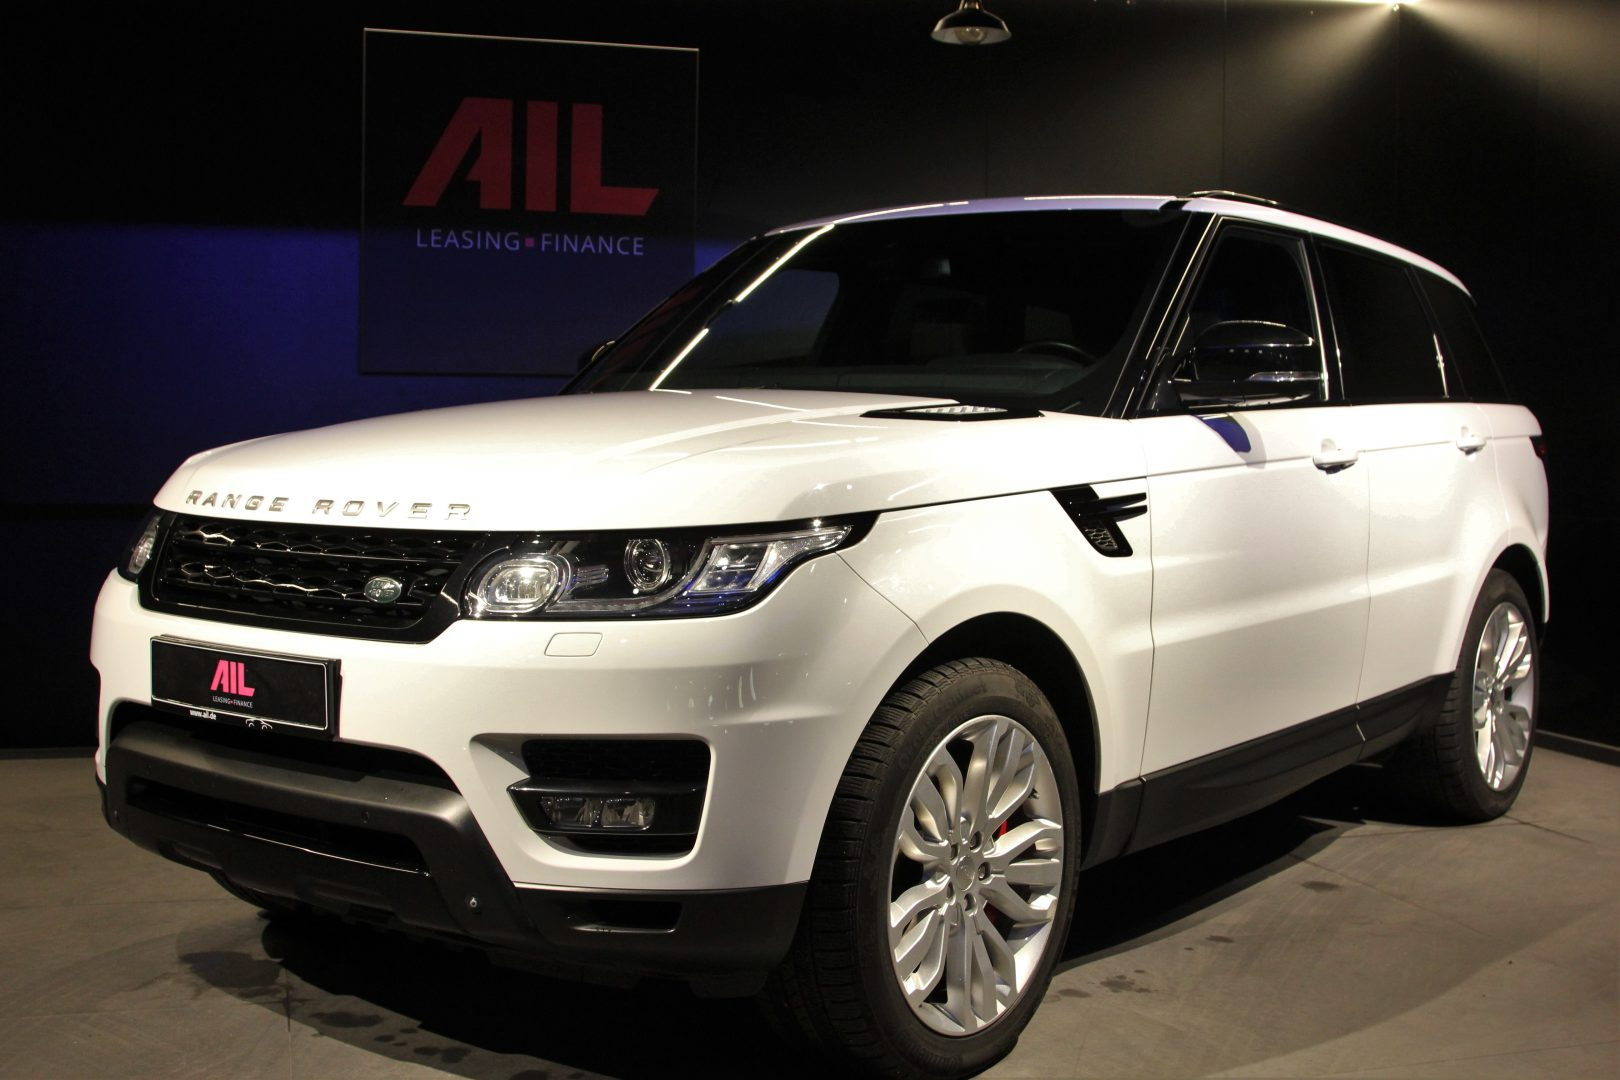 AIL Land Rover Range Rover Sport HSE Dynamic 12